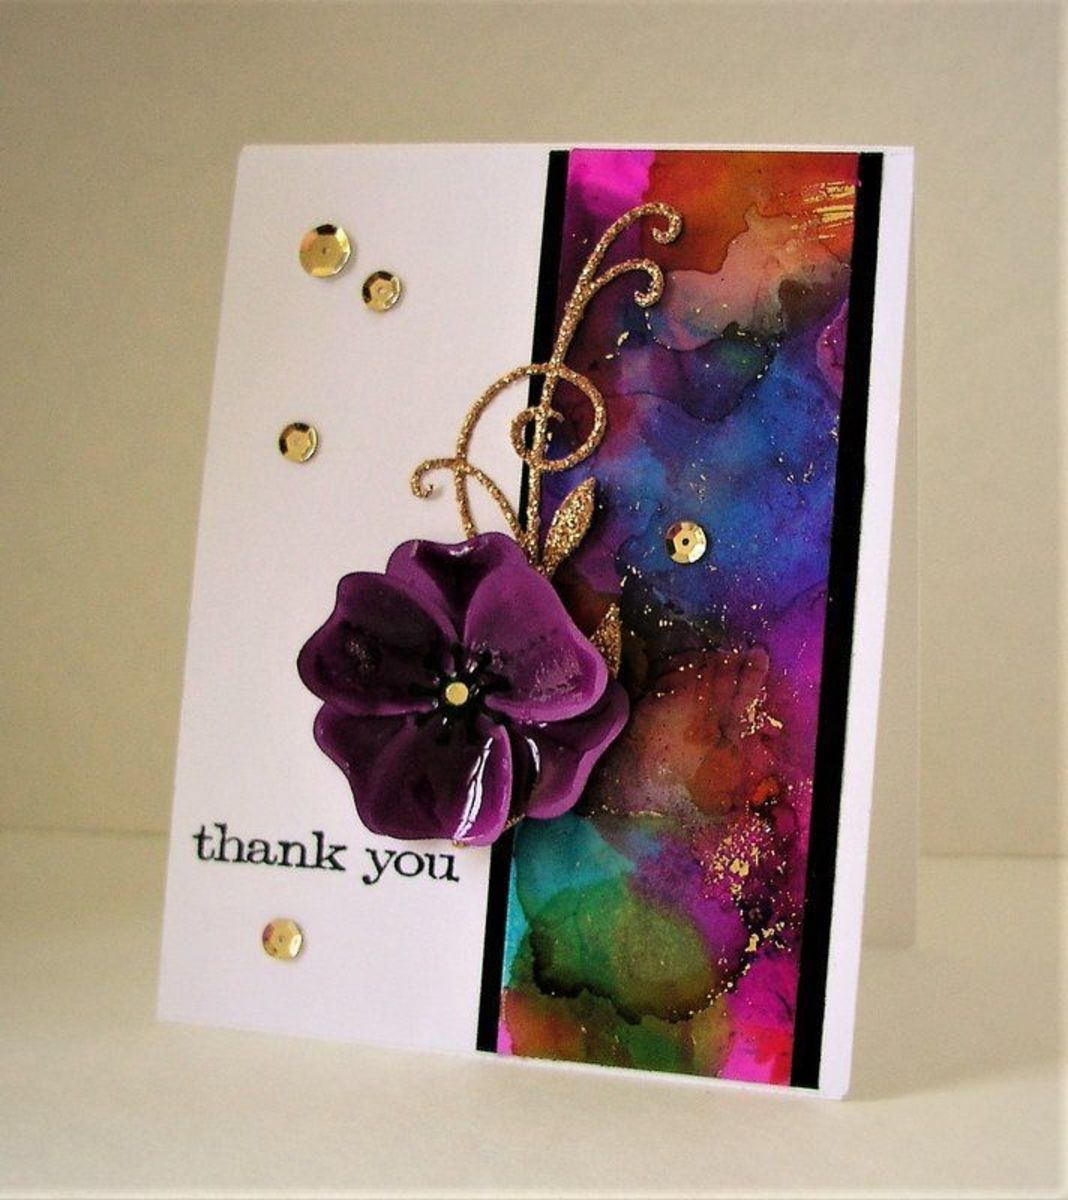 Alcohol inks can be used on glossy paper to make greeting cards